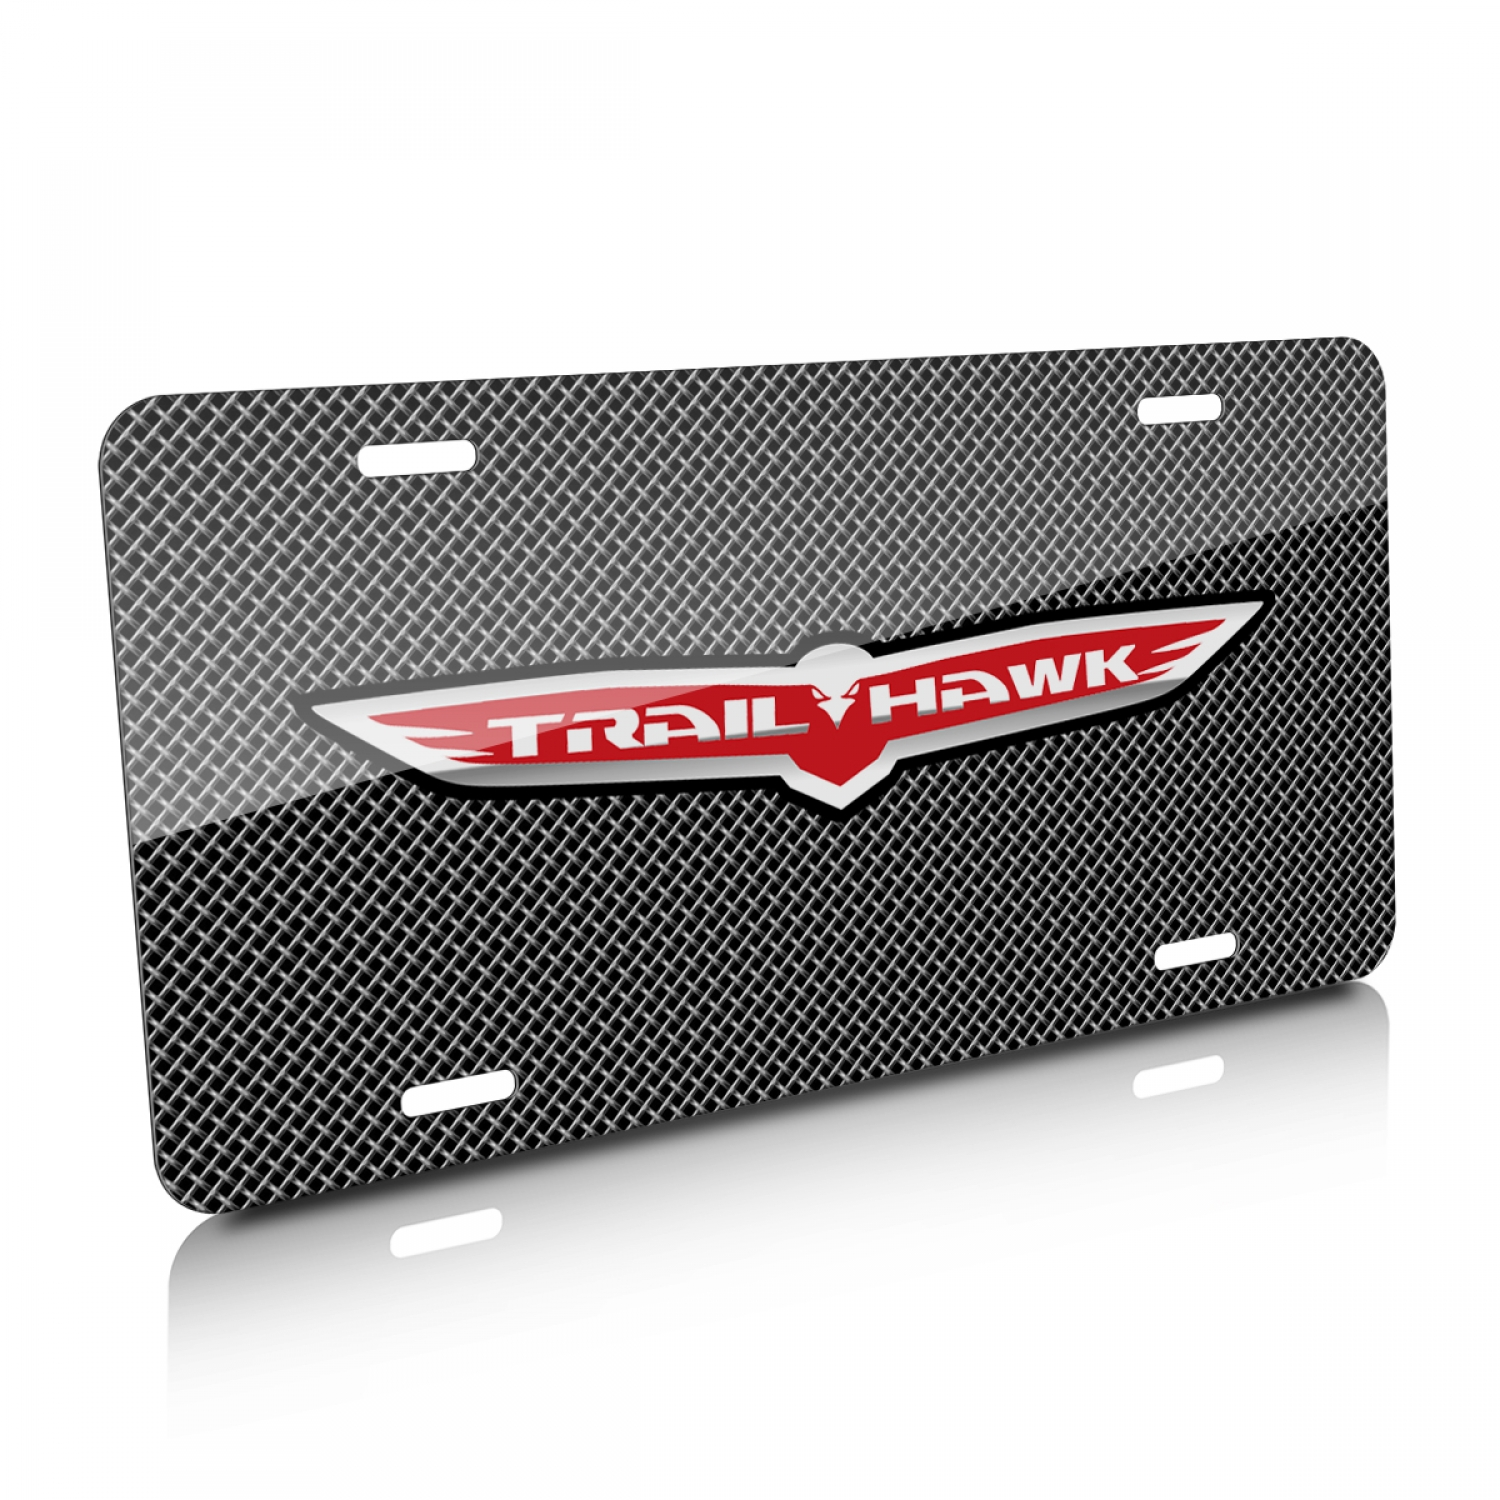 Jeep Trailhawk Mesh Grill Graphic Aluminum License Plate